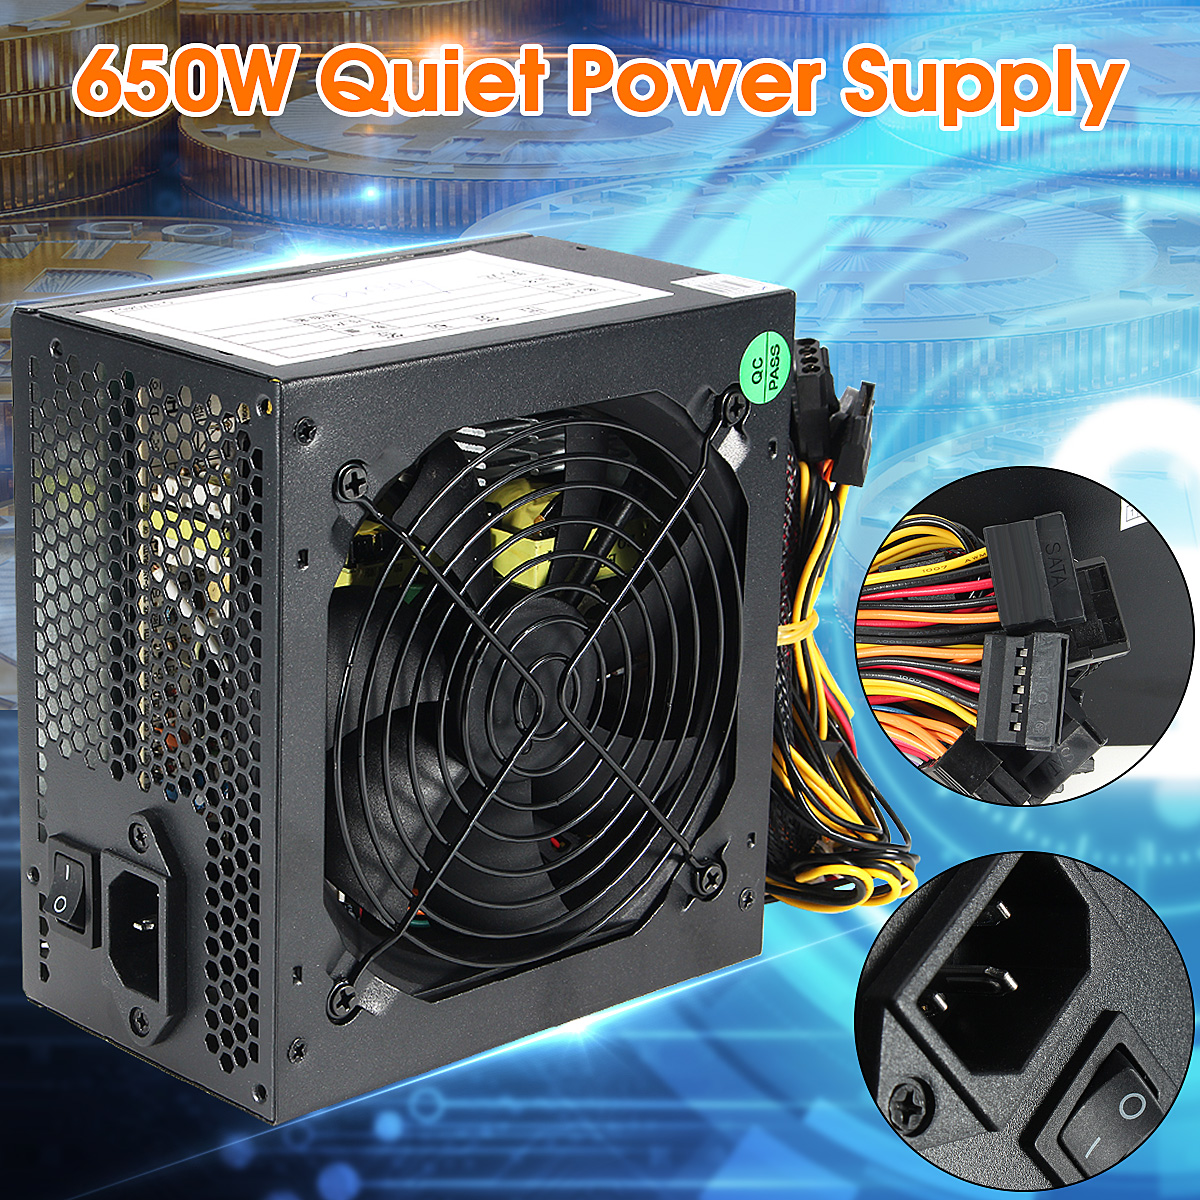 600W PC PSU Power Supply Black Gaming Quiet 120mm Fan 20/24pin 12V ATX New computer Power Supply For BTC baby hairband crystal tiara hairband kid girl bridal princess prom crown party accessiories princess prom crown headband